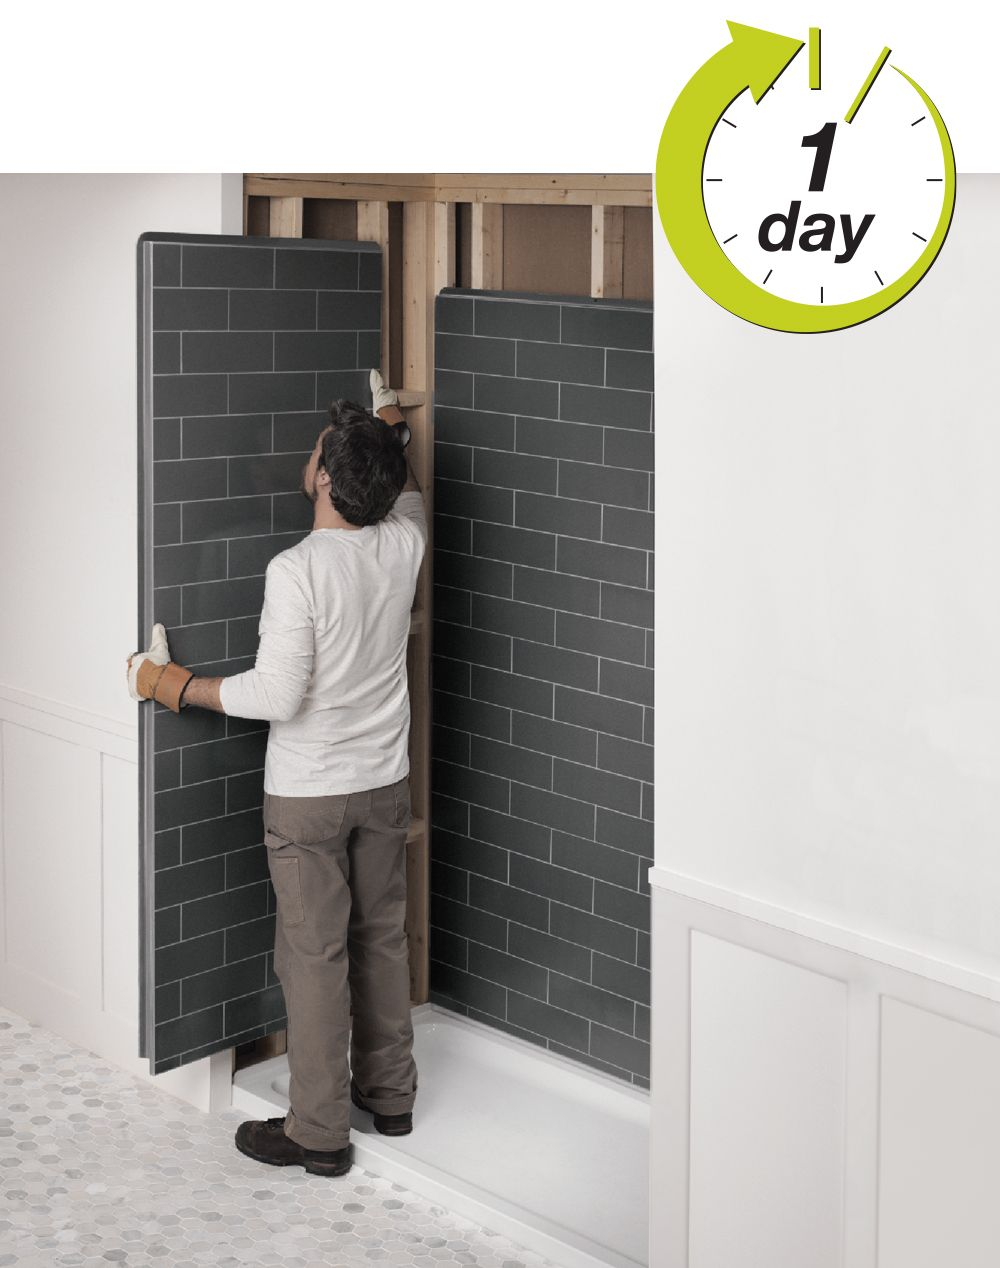 Plastic Tiles For Bathroom Walls